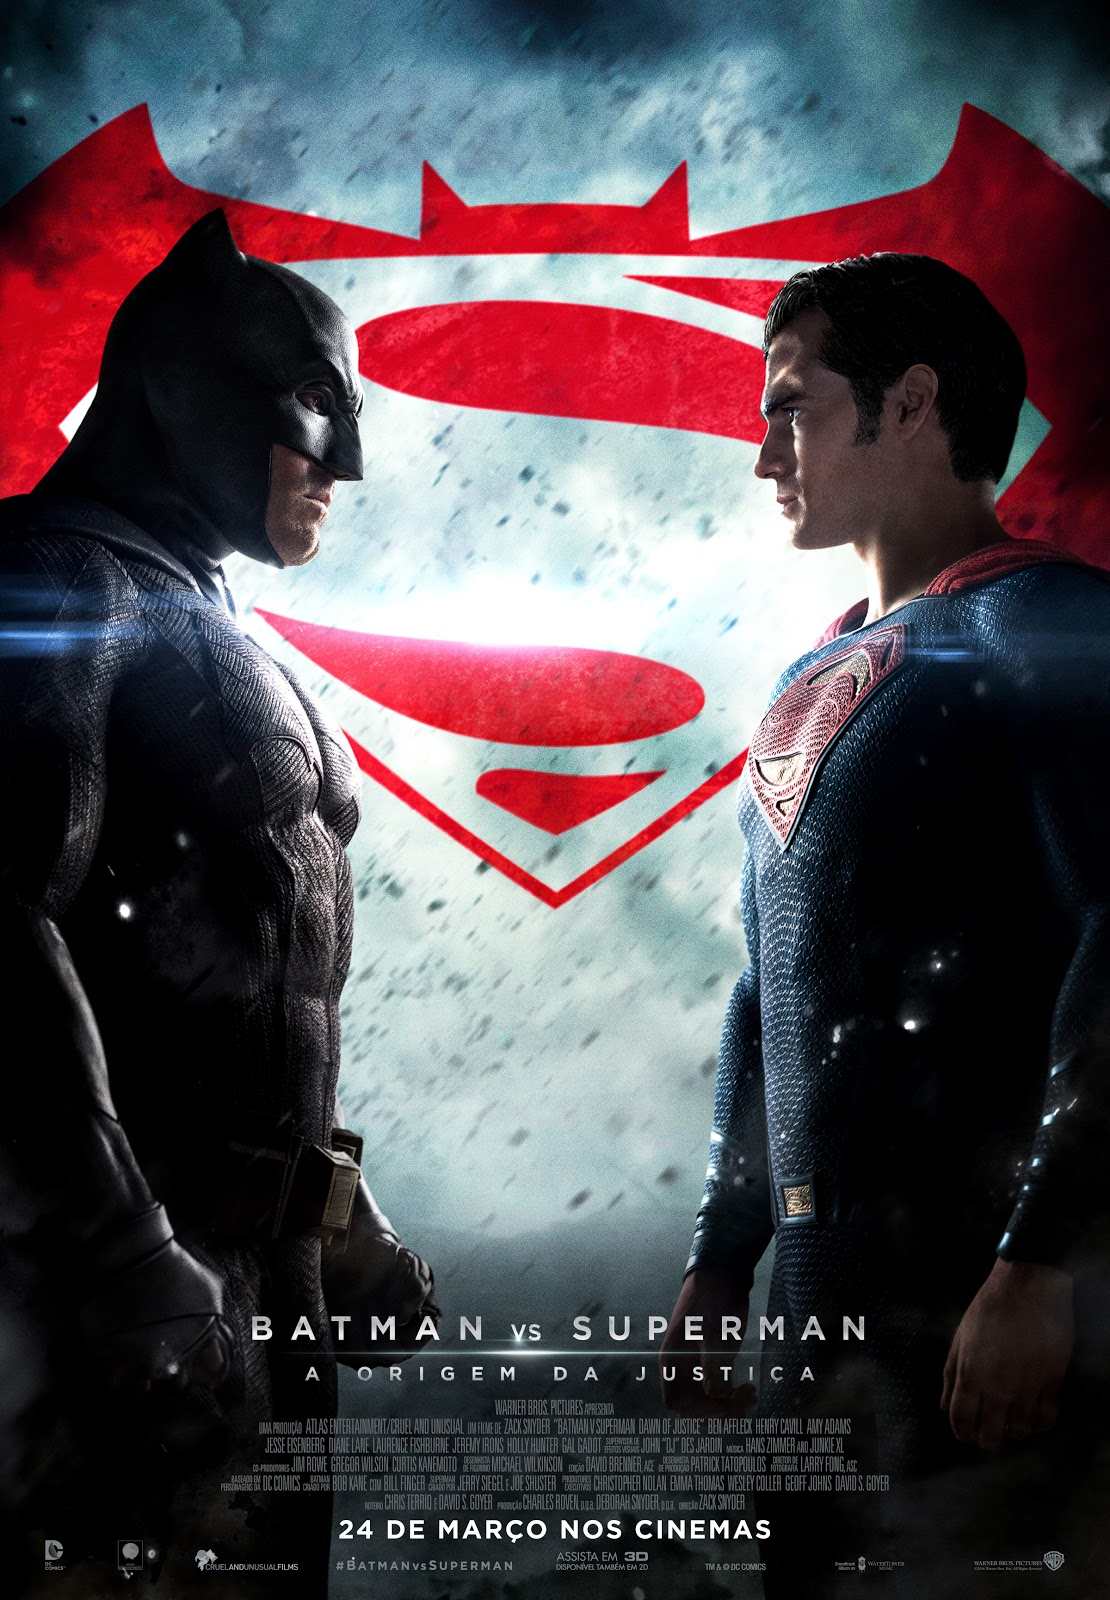 Batman v Superman Dawn of Justice Movie Novo Filme de Zack Snyder - Lealtudo